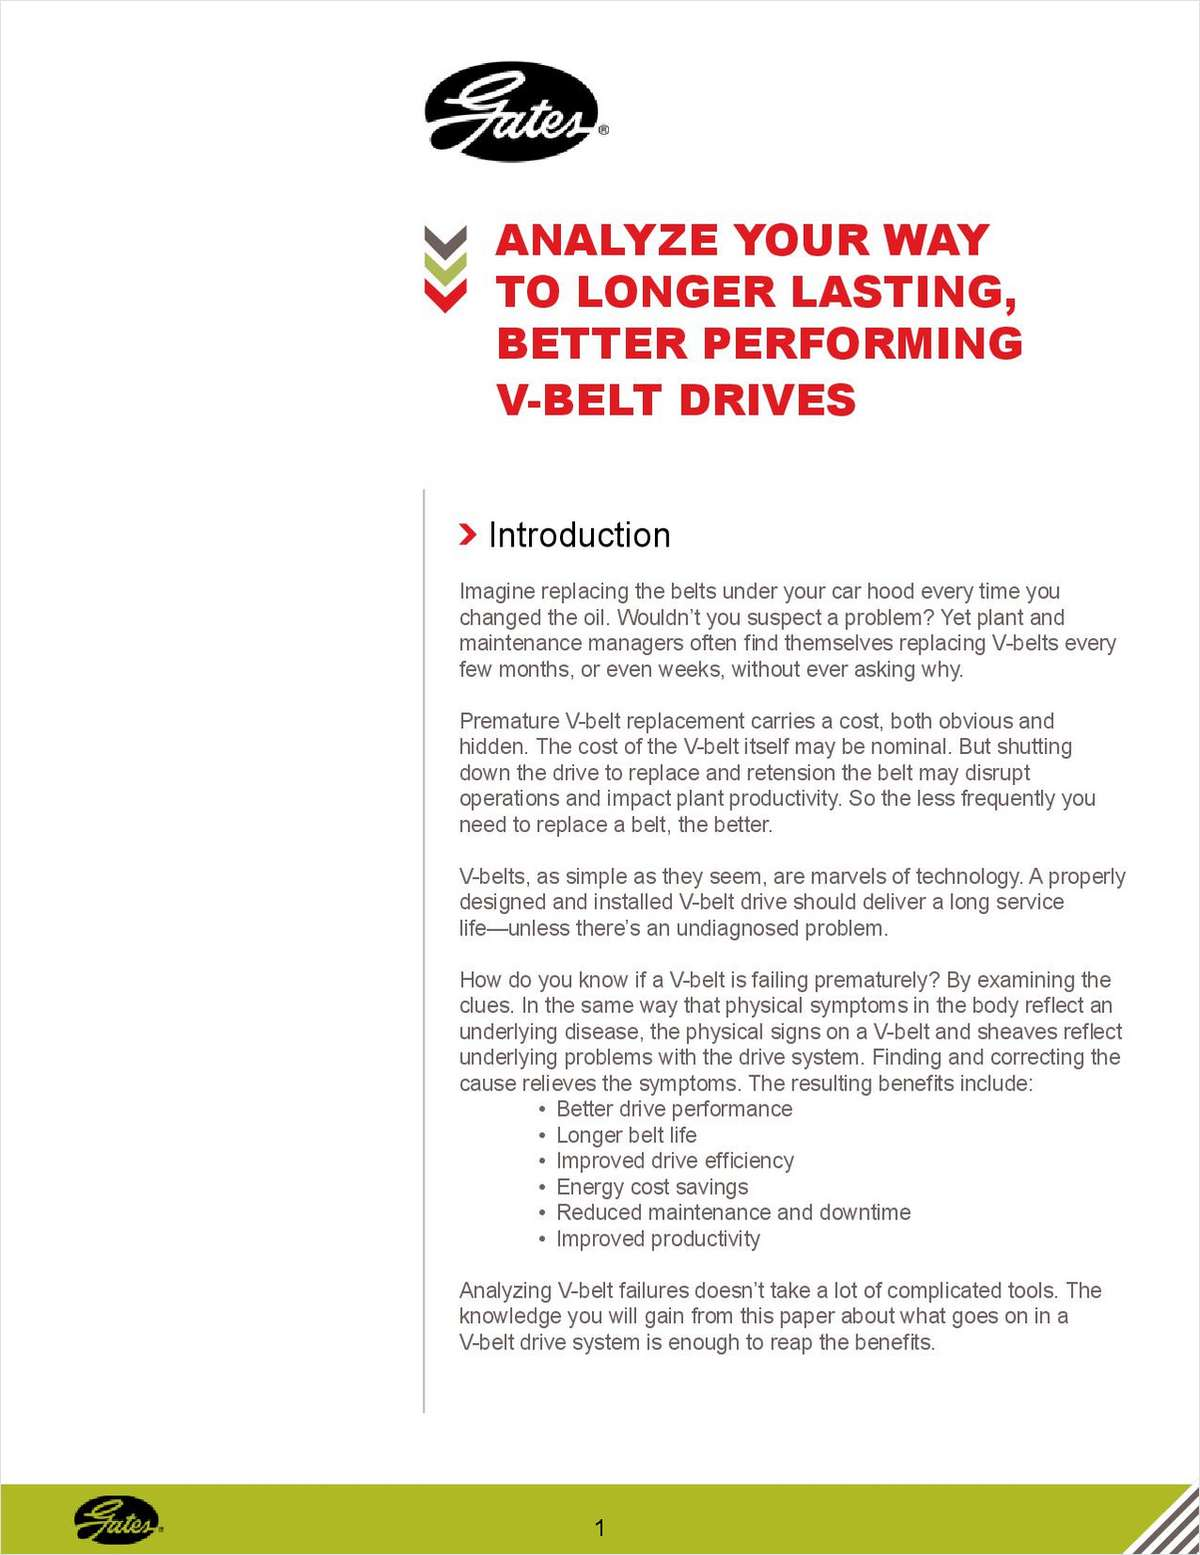 Longer Lasting, Better Performing V-Belt Drives